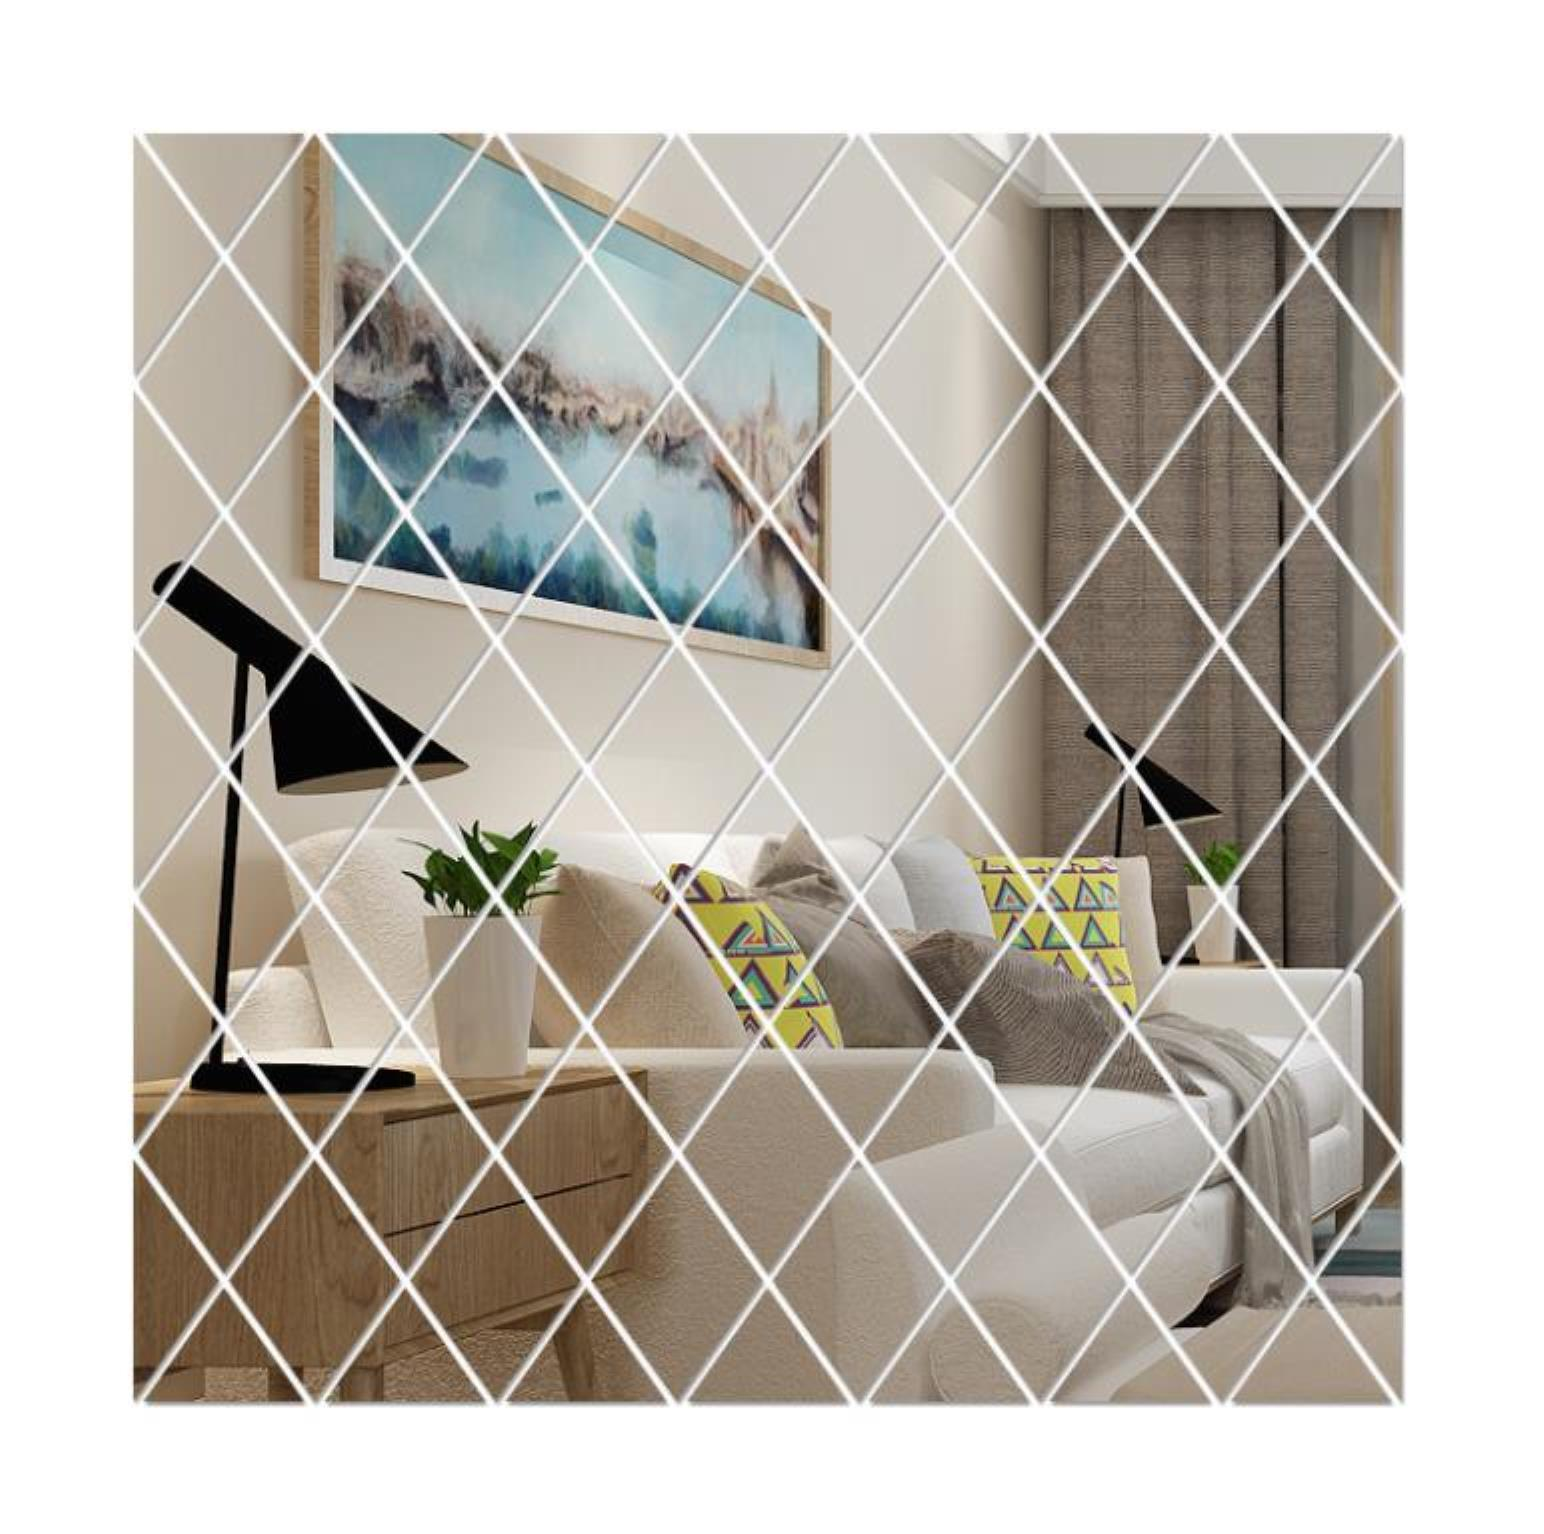 Diy 3d Mirror Wall Stickers Acrylic Art Room Bedroom Living Room Home Decor Decals Mural Painting Removable Mode bbytja